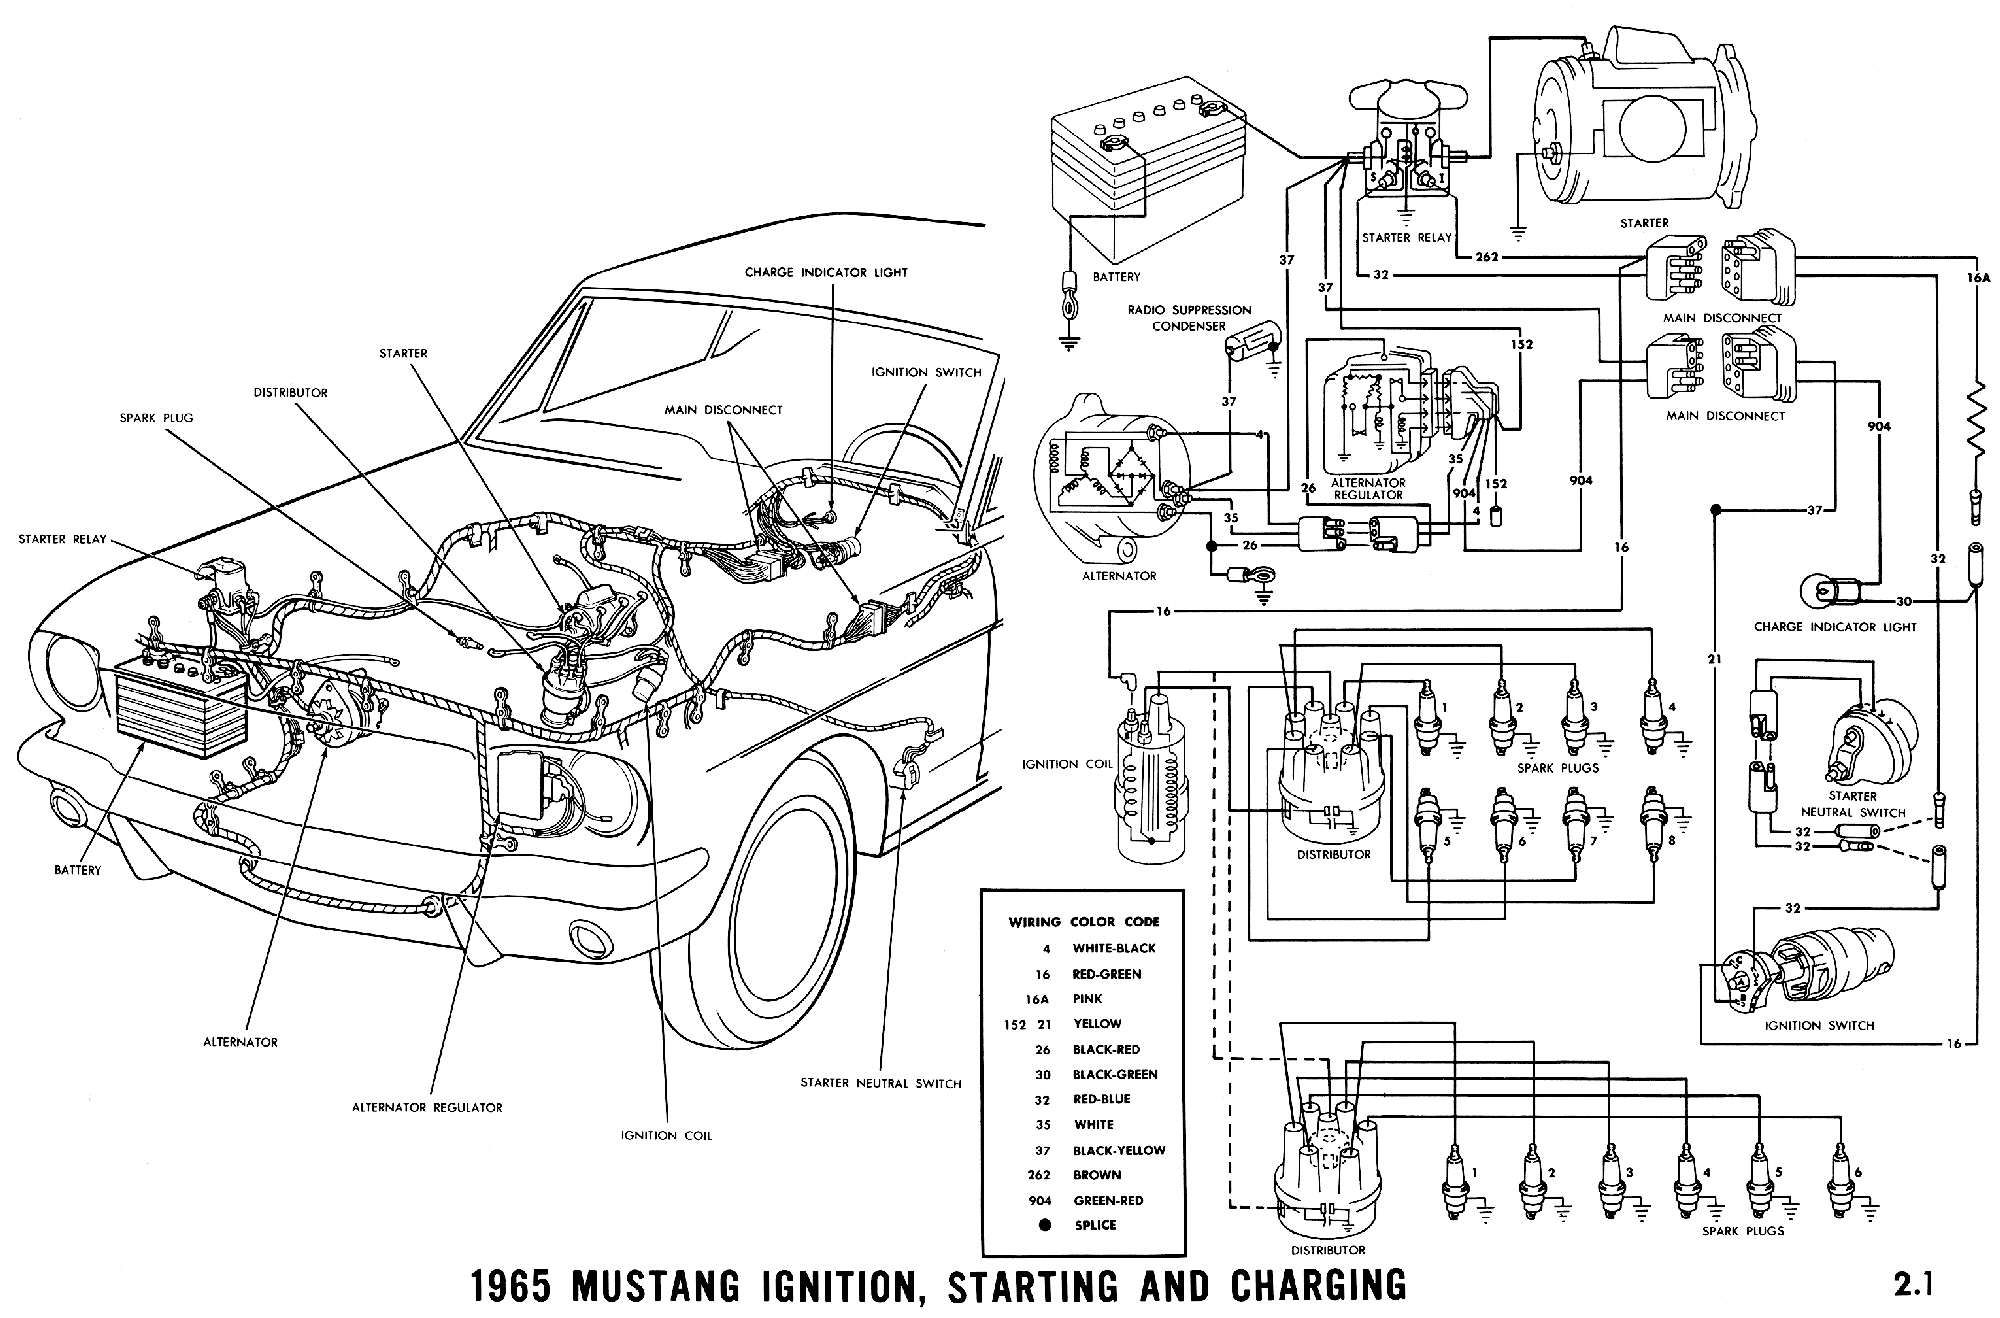 1967 mustang wiring harness wiring diagram operations 1967 mustang wiring harness diagram 1967 mustang wiring harness [ 2000 x 1318 Pixel ]